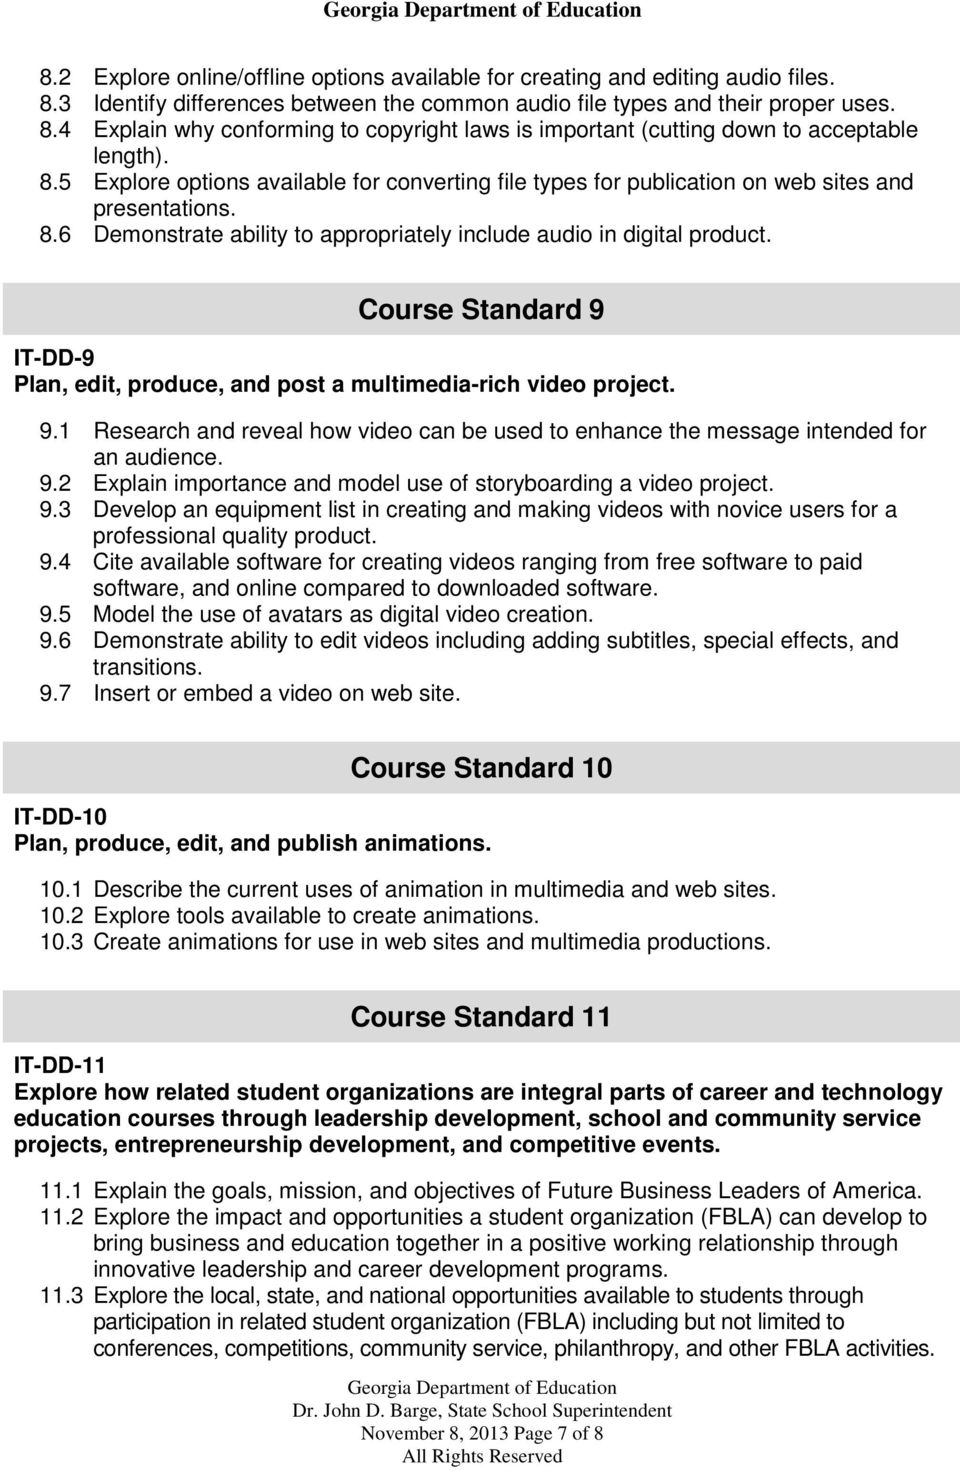 Course Standard 9 IT-DD-9 Plan, edit, produce, and post a multimedia-rich video project. 9.1 Research and reveal how video can be used to enhance the message intended for an audience. 9.2 Explain importance and model use of storyboarding a video project.